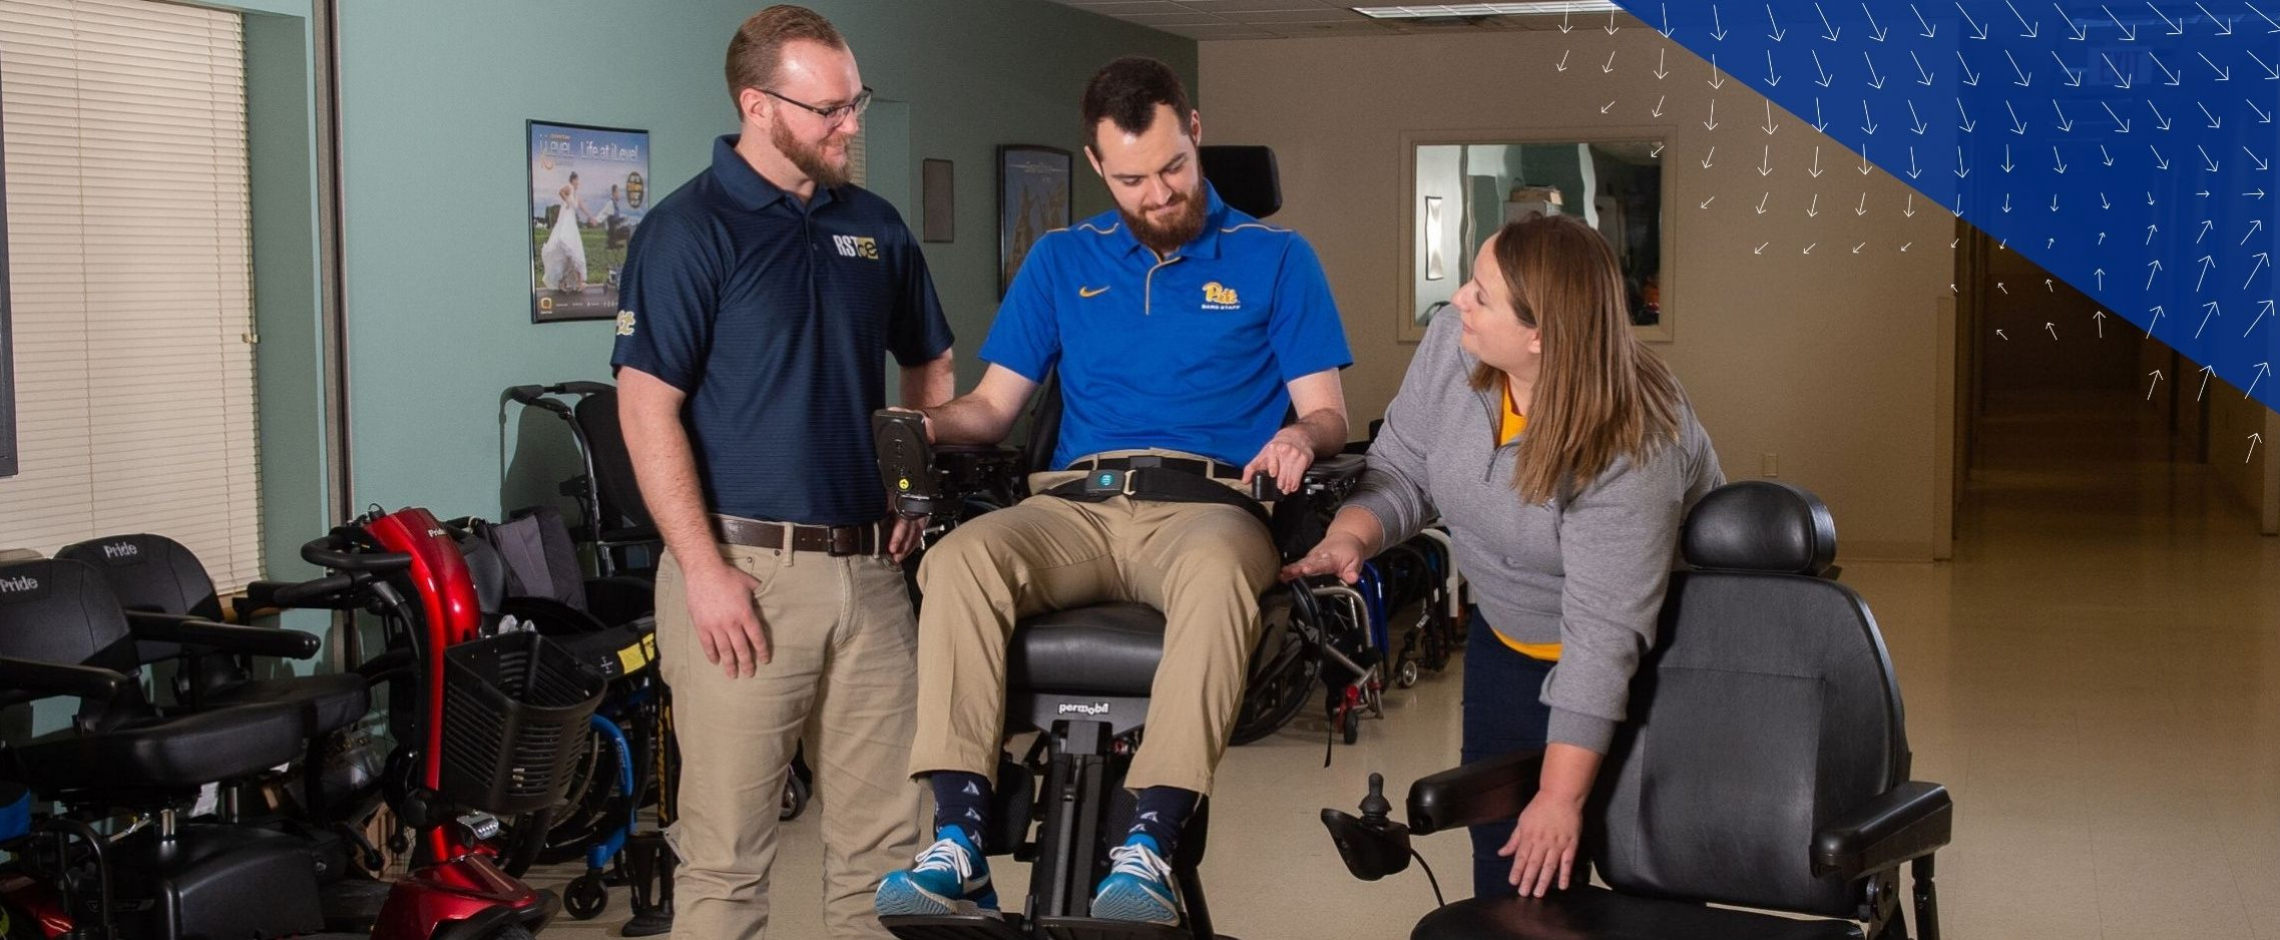 students testing a power wheelchair